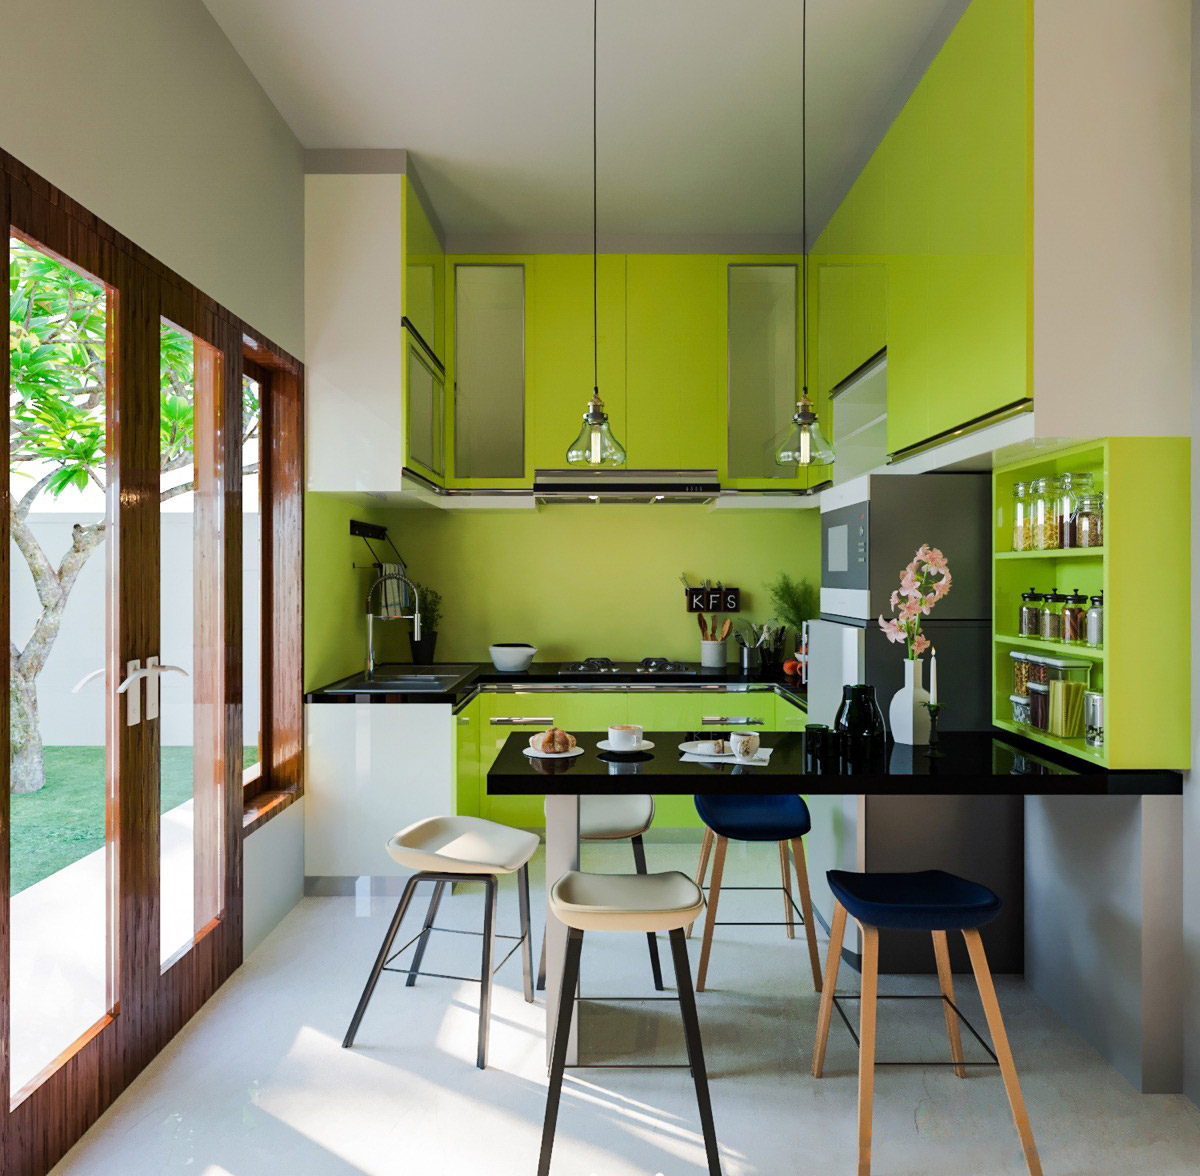 Lime Green Home Decor: 33 Gorgeous Green Kitchens And Ways To Accessorize Them